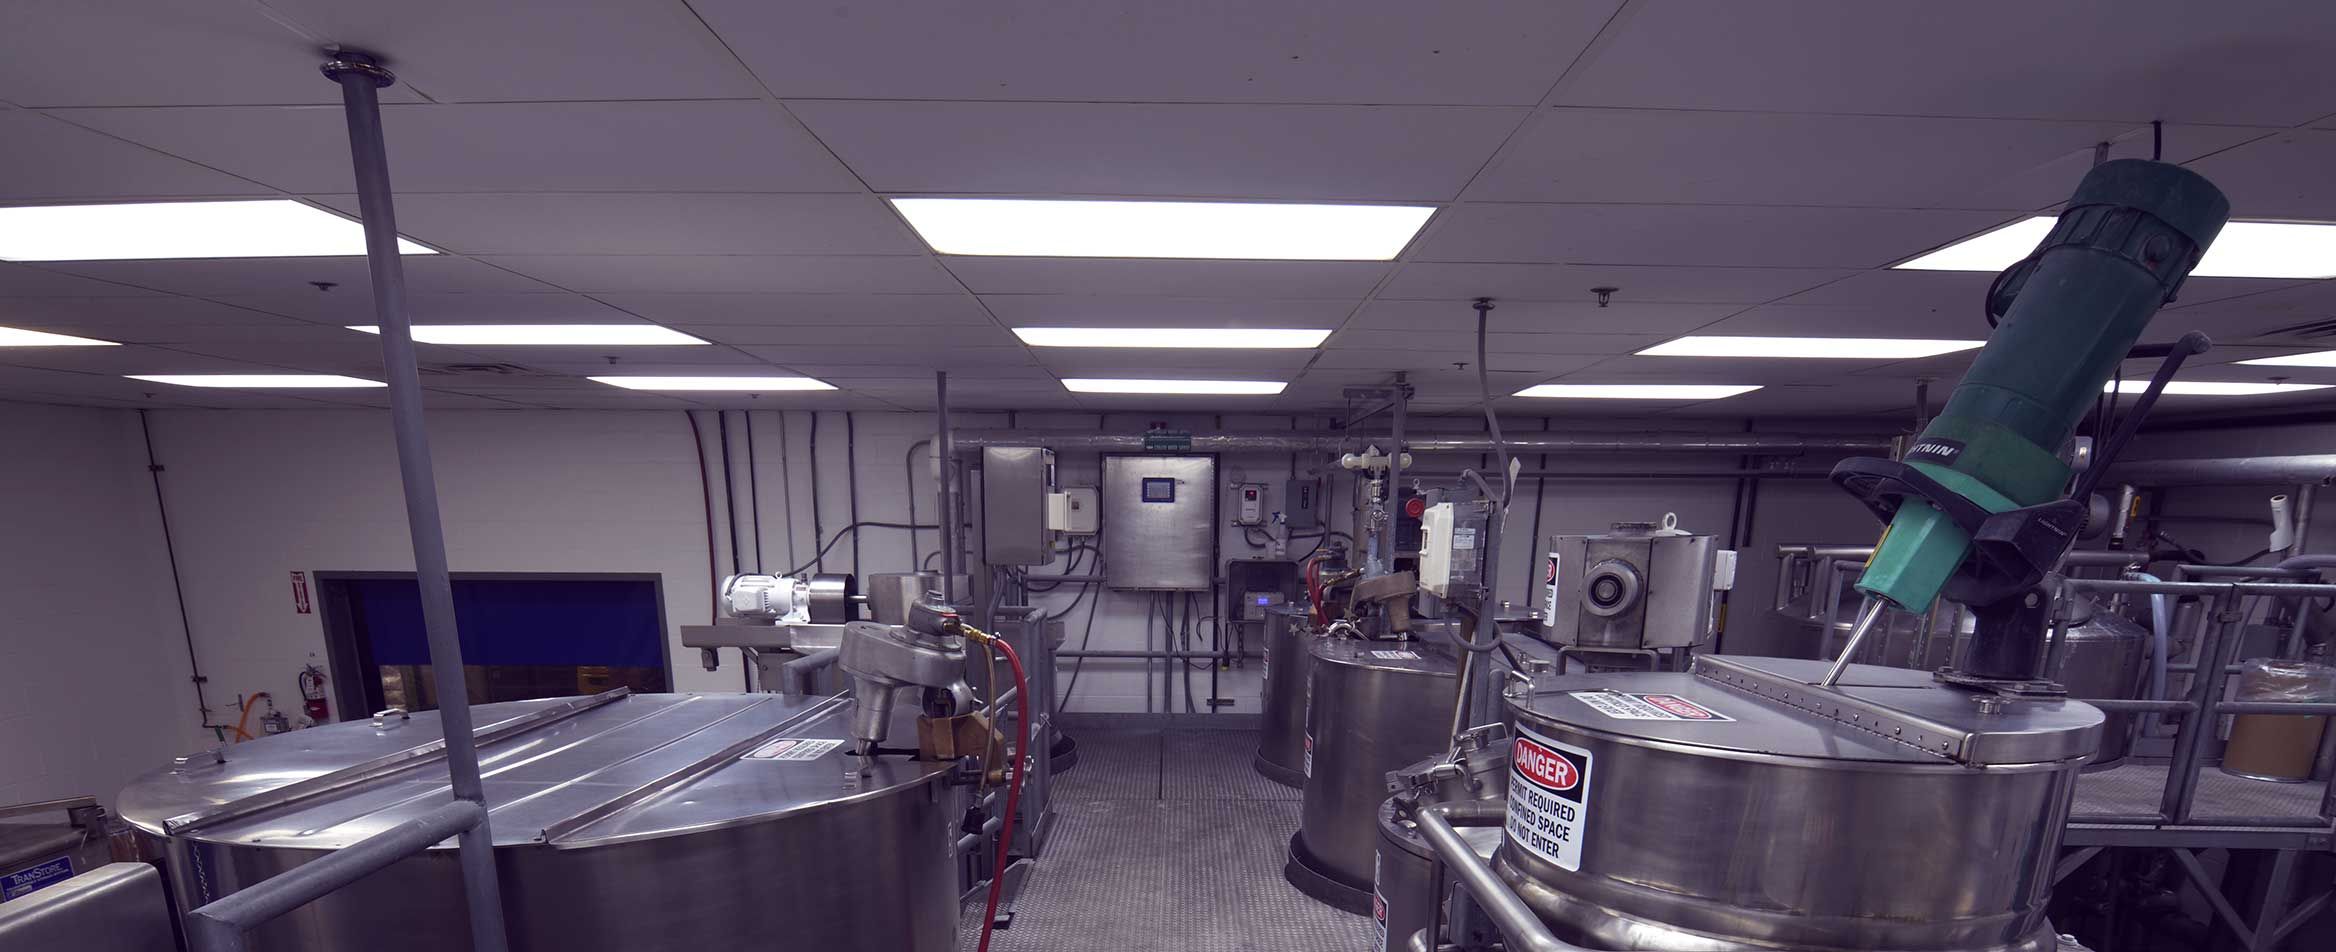 Chemical Blending Room in Greenville, South Carolina